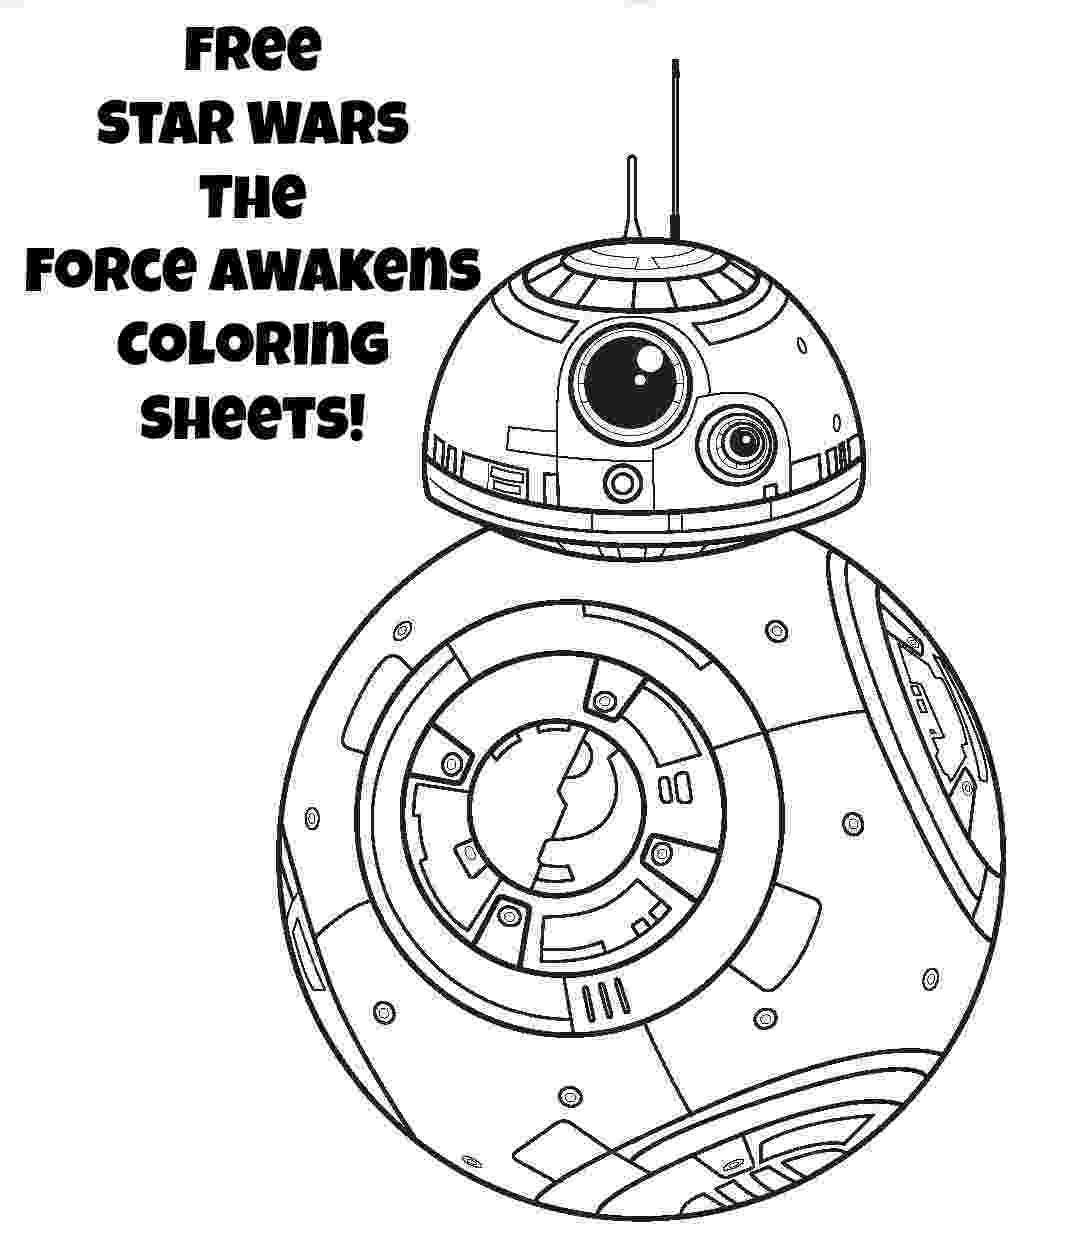 starwars colouring star wars free printable coloring pages for adults kids starwars colouring